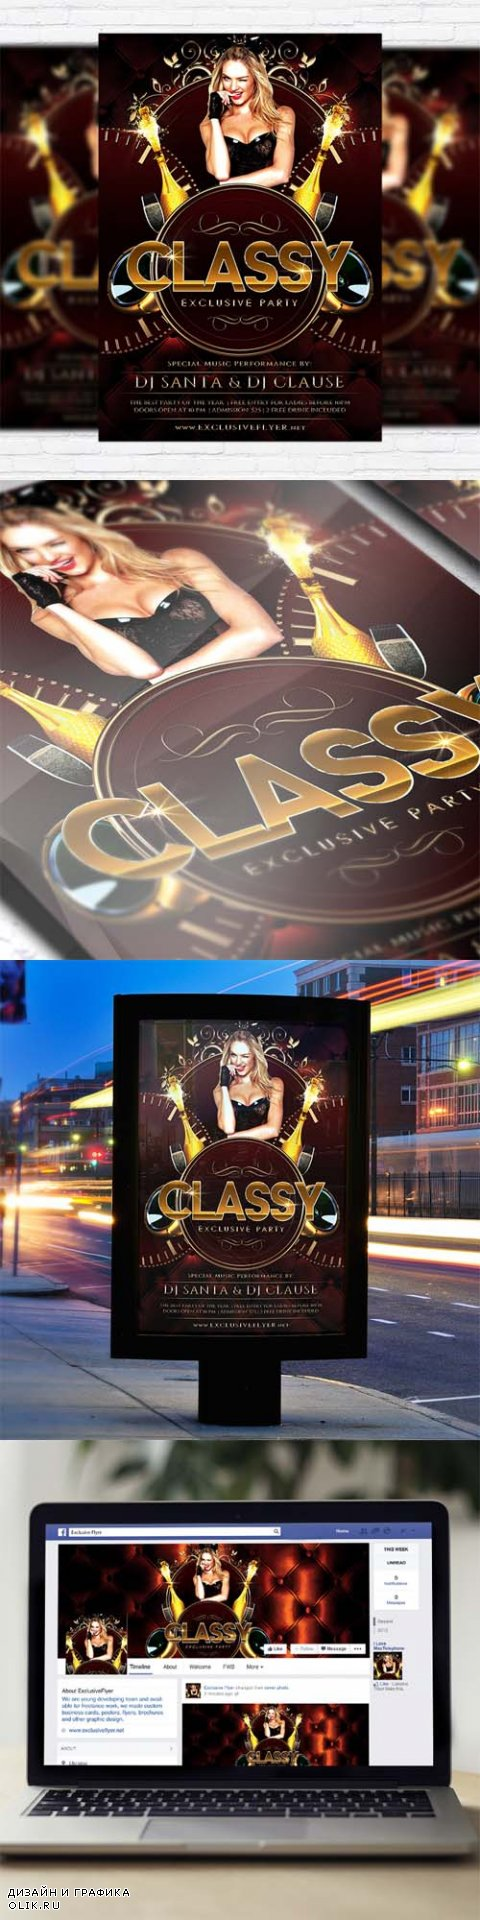 Flyer Template - Exclusive Classy Night + Facebook Cover